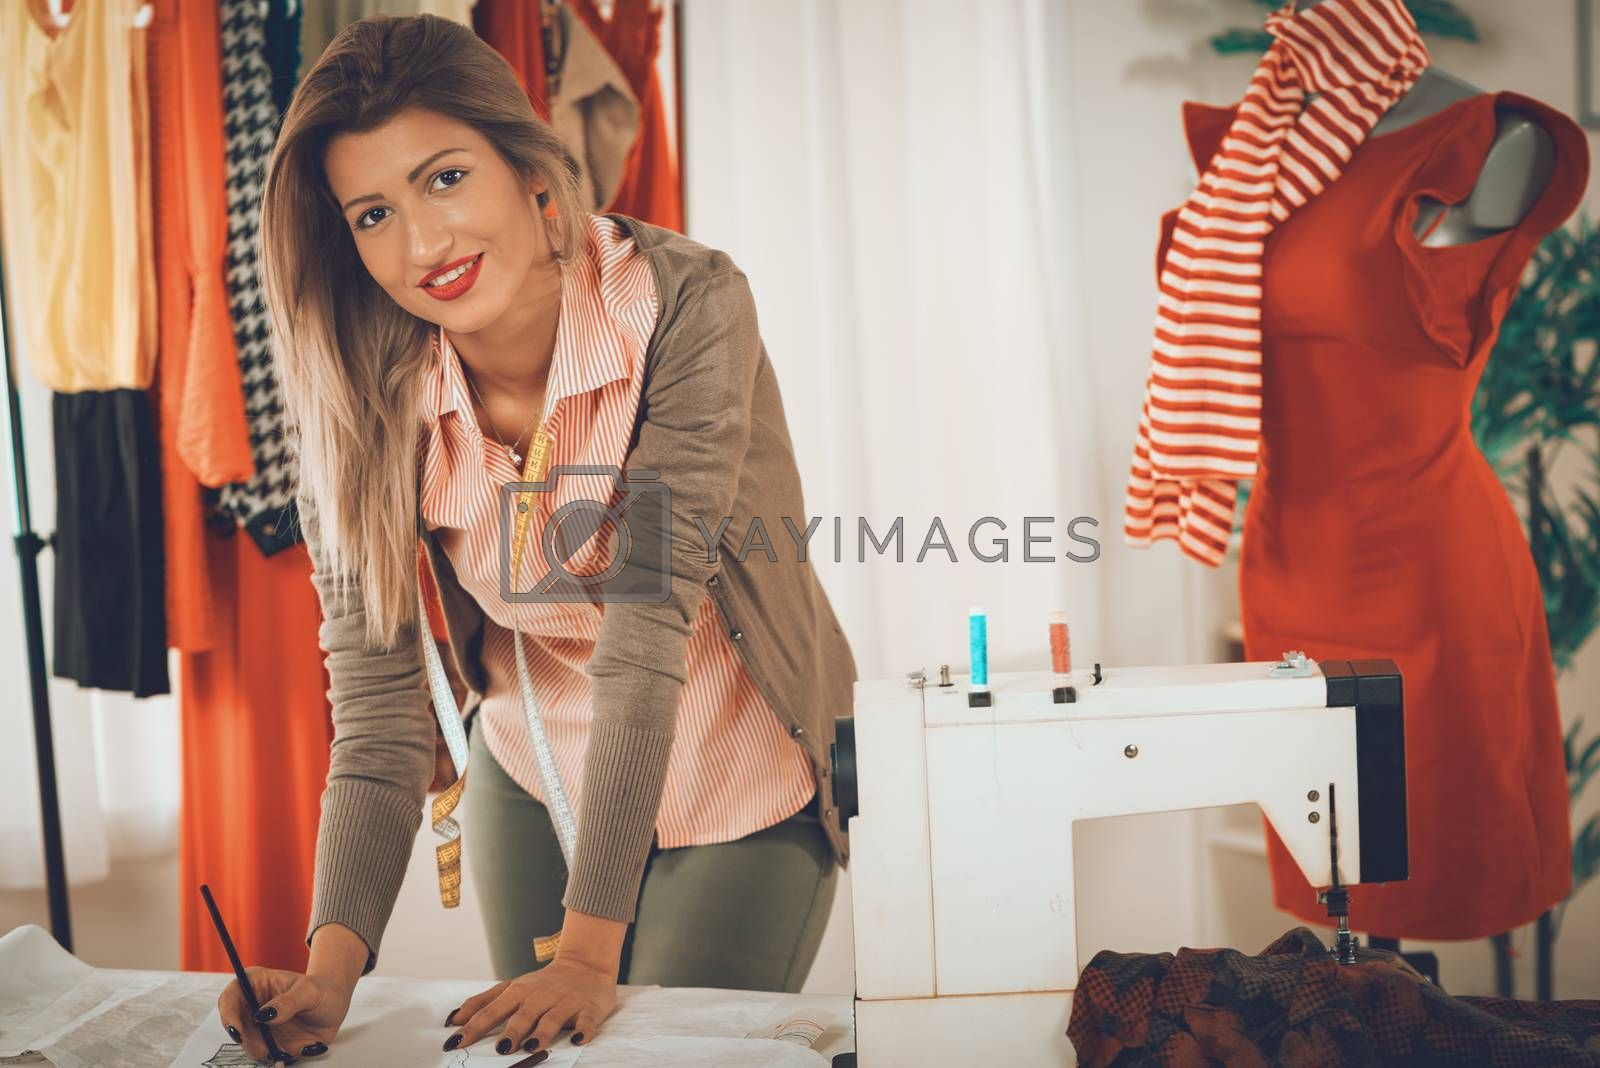 Young smiling woman tailor with tape measure draped over the neck drawing on sewing pattern. Looking at camera.